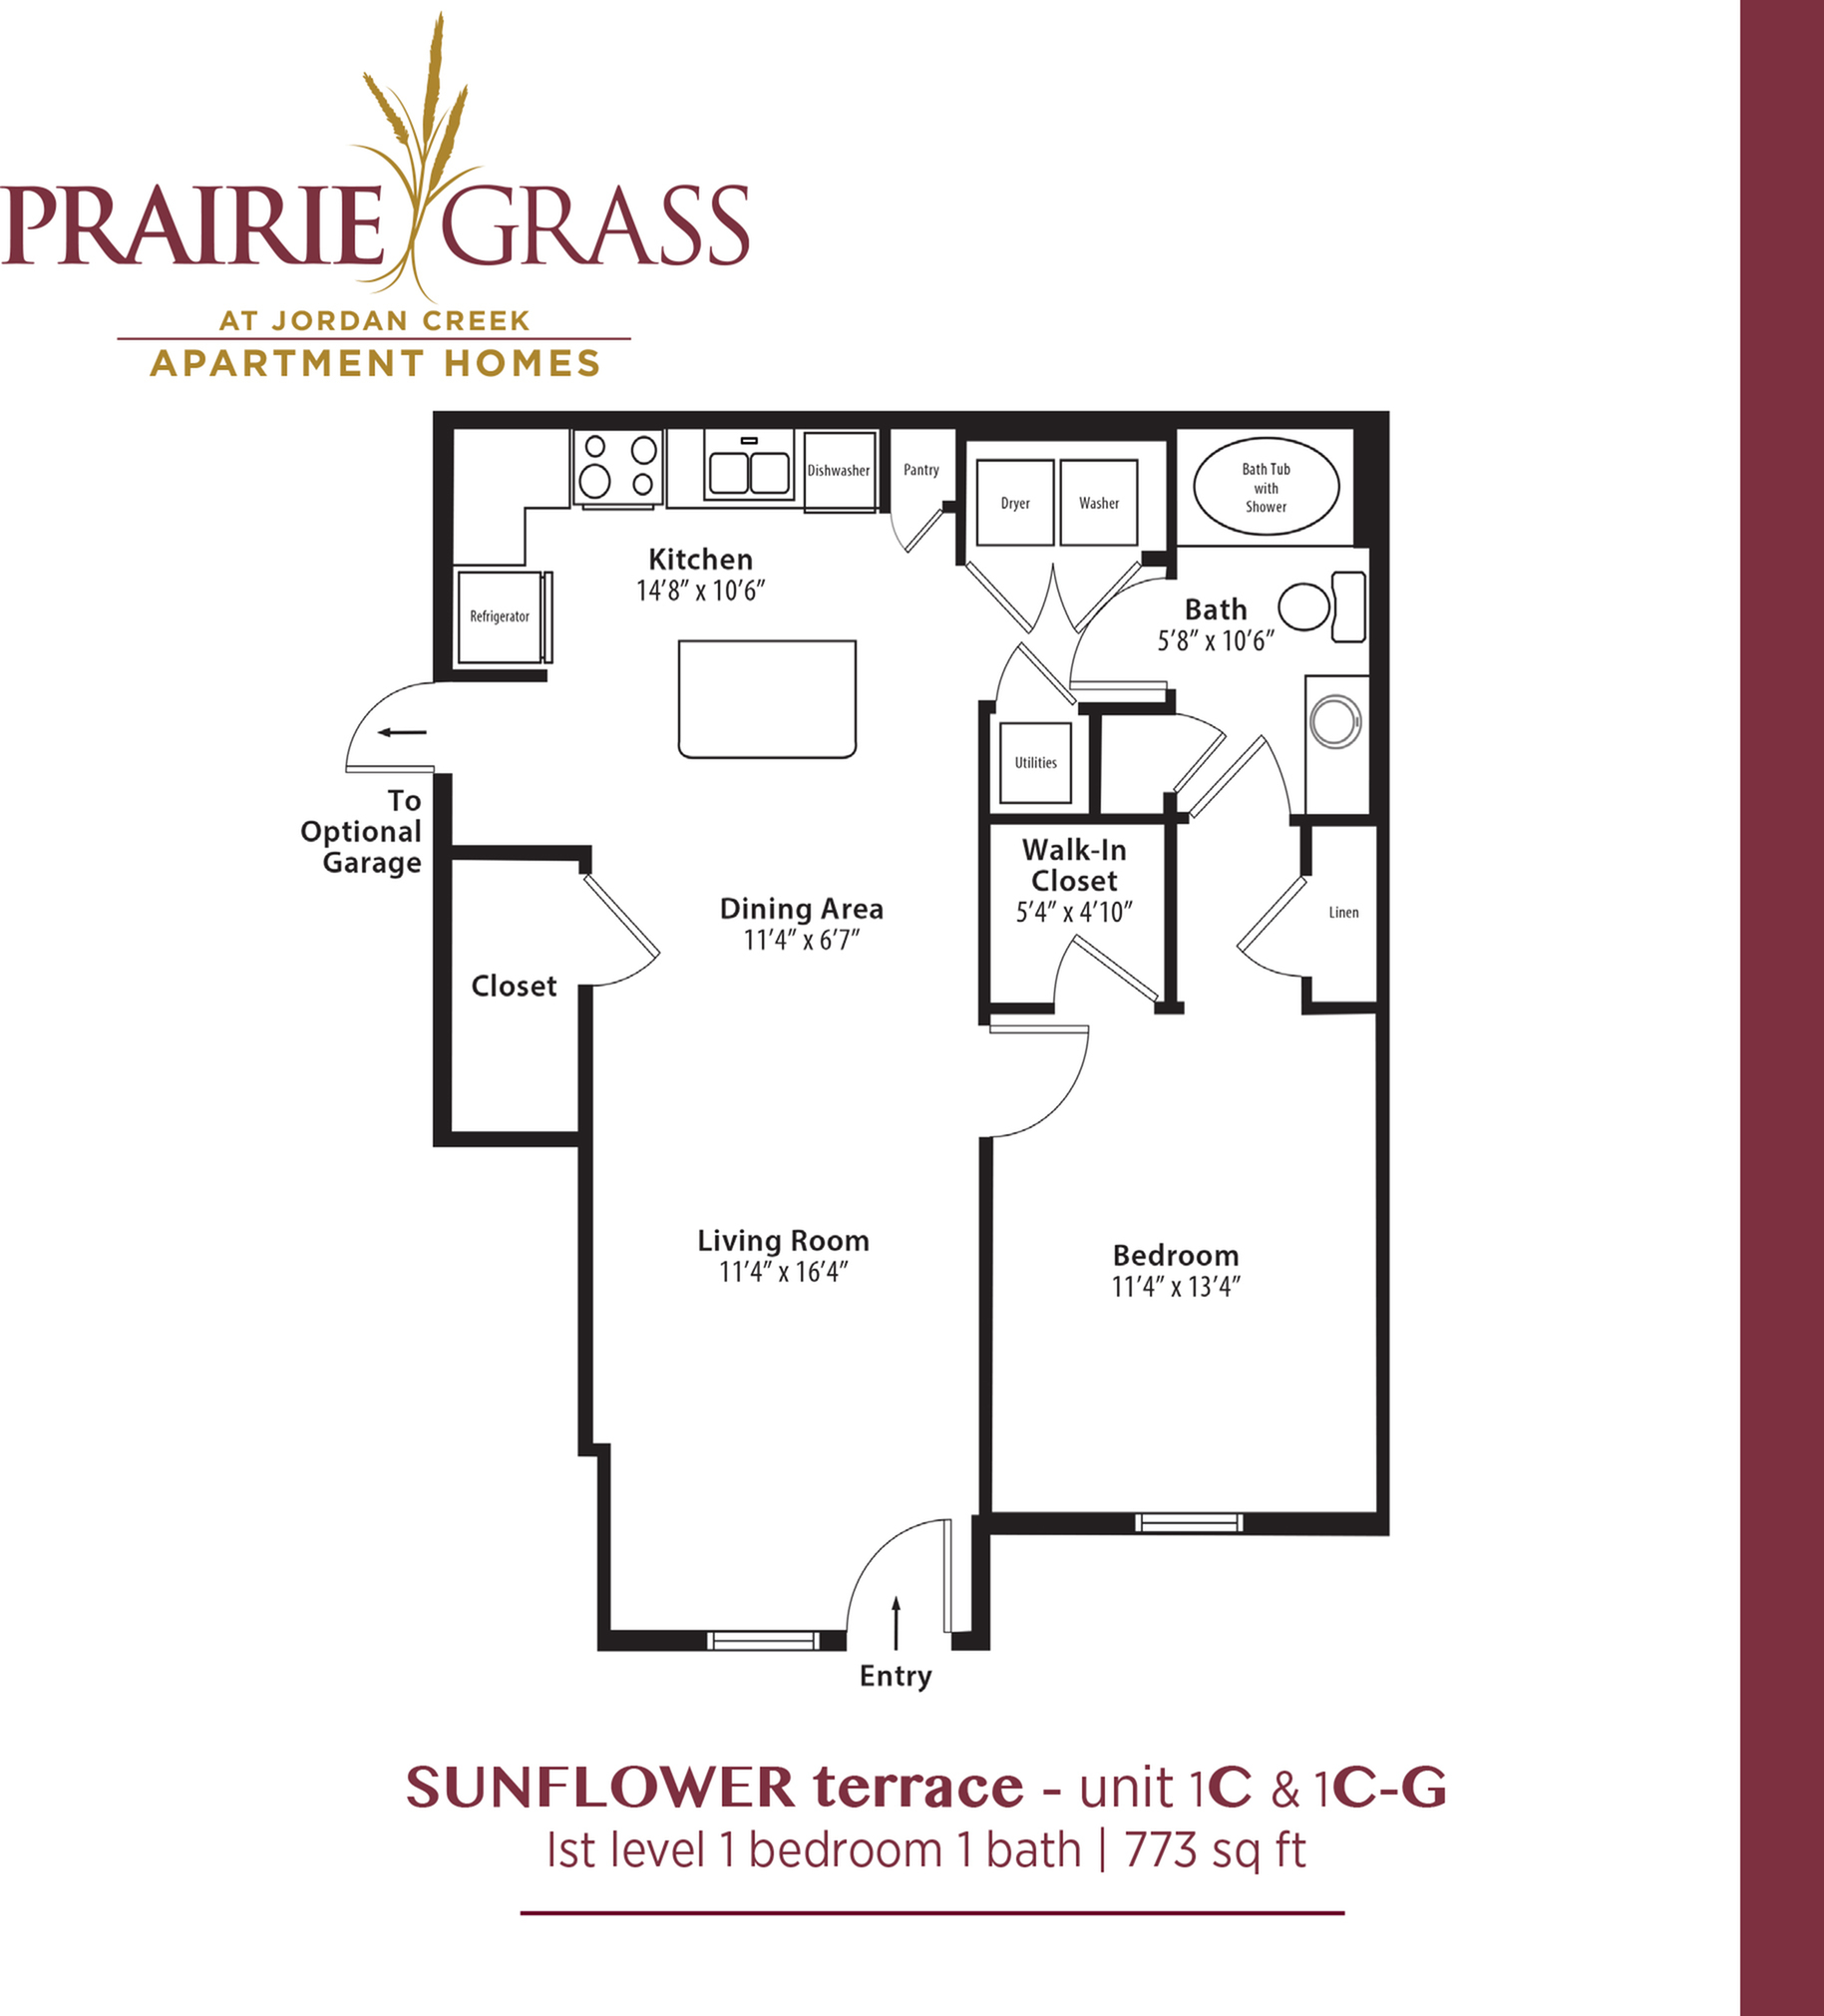 Sunflower Terrace - Lower 1 Bedroom with Attached Garage